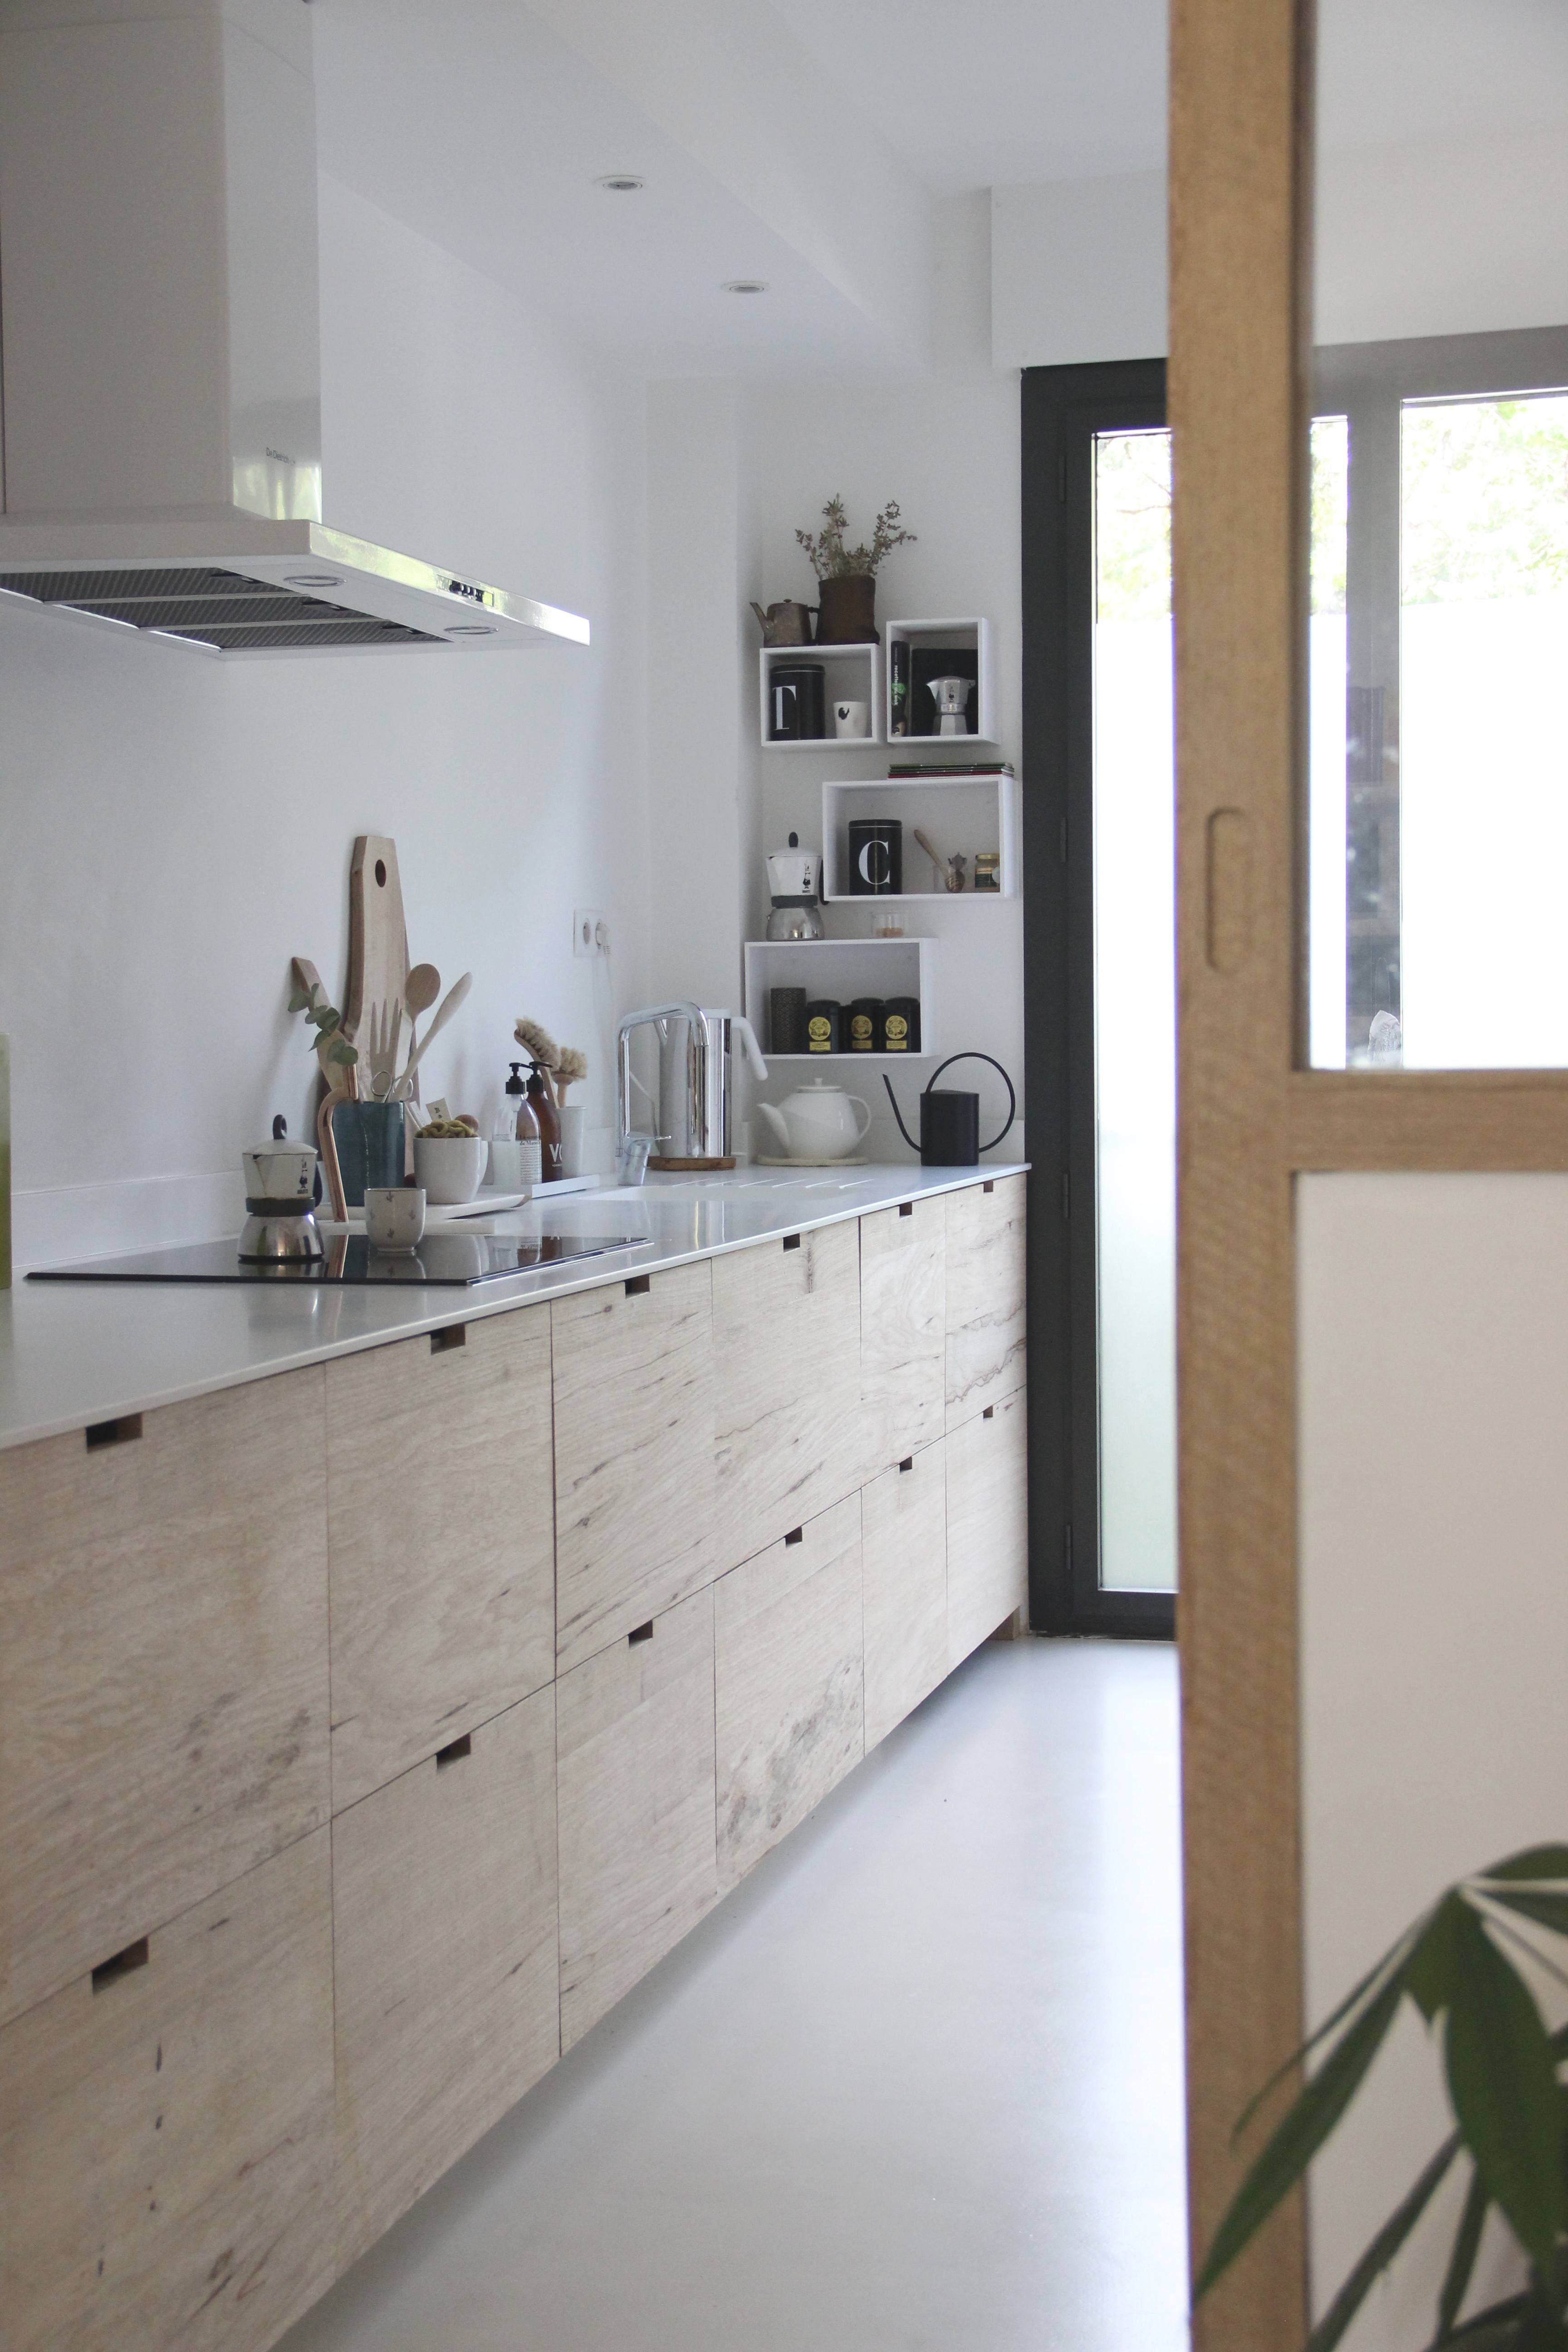 Before & After A Designer's Ikea Hack Kitchen in Provence